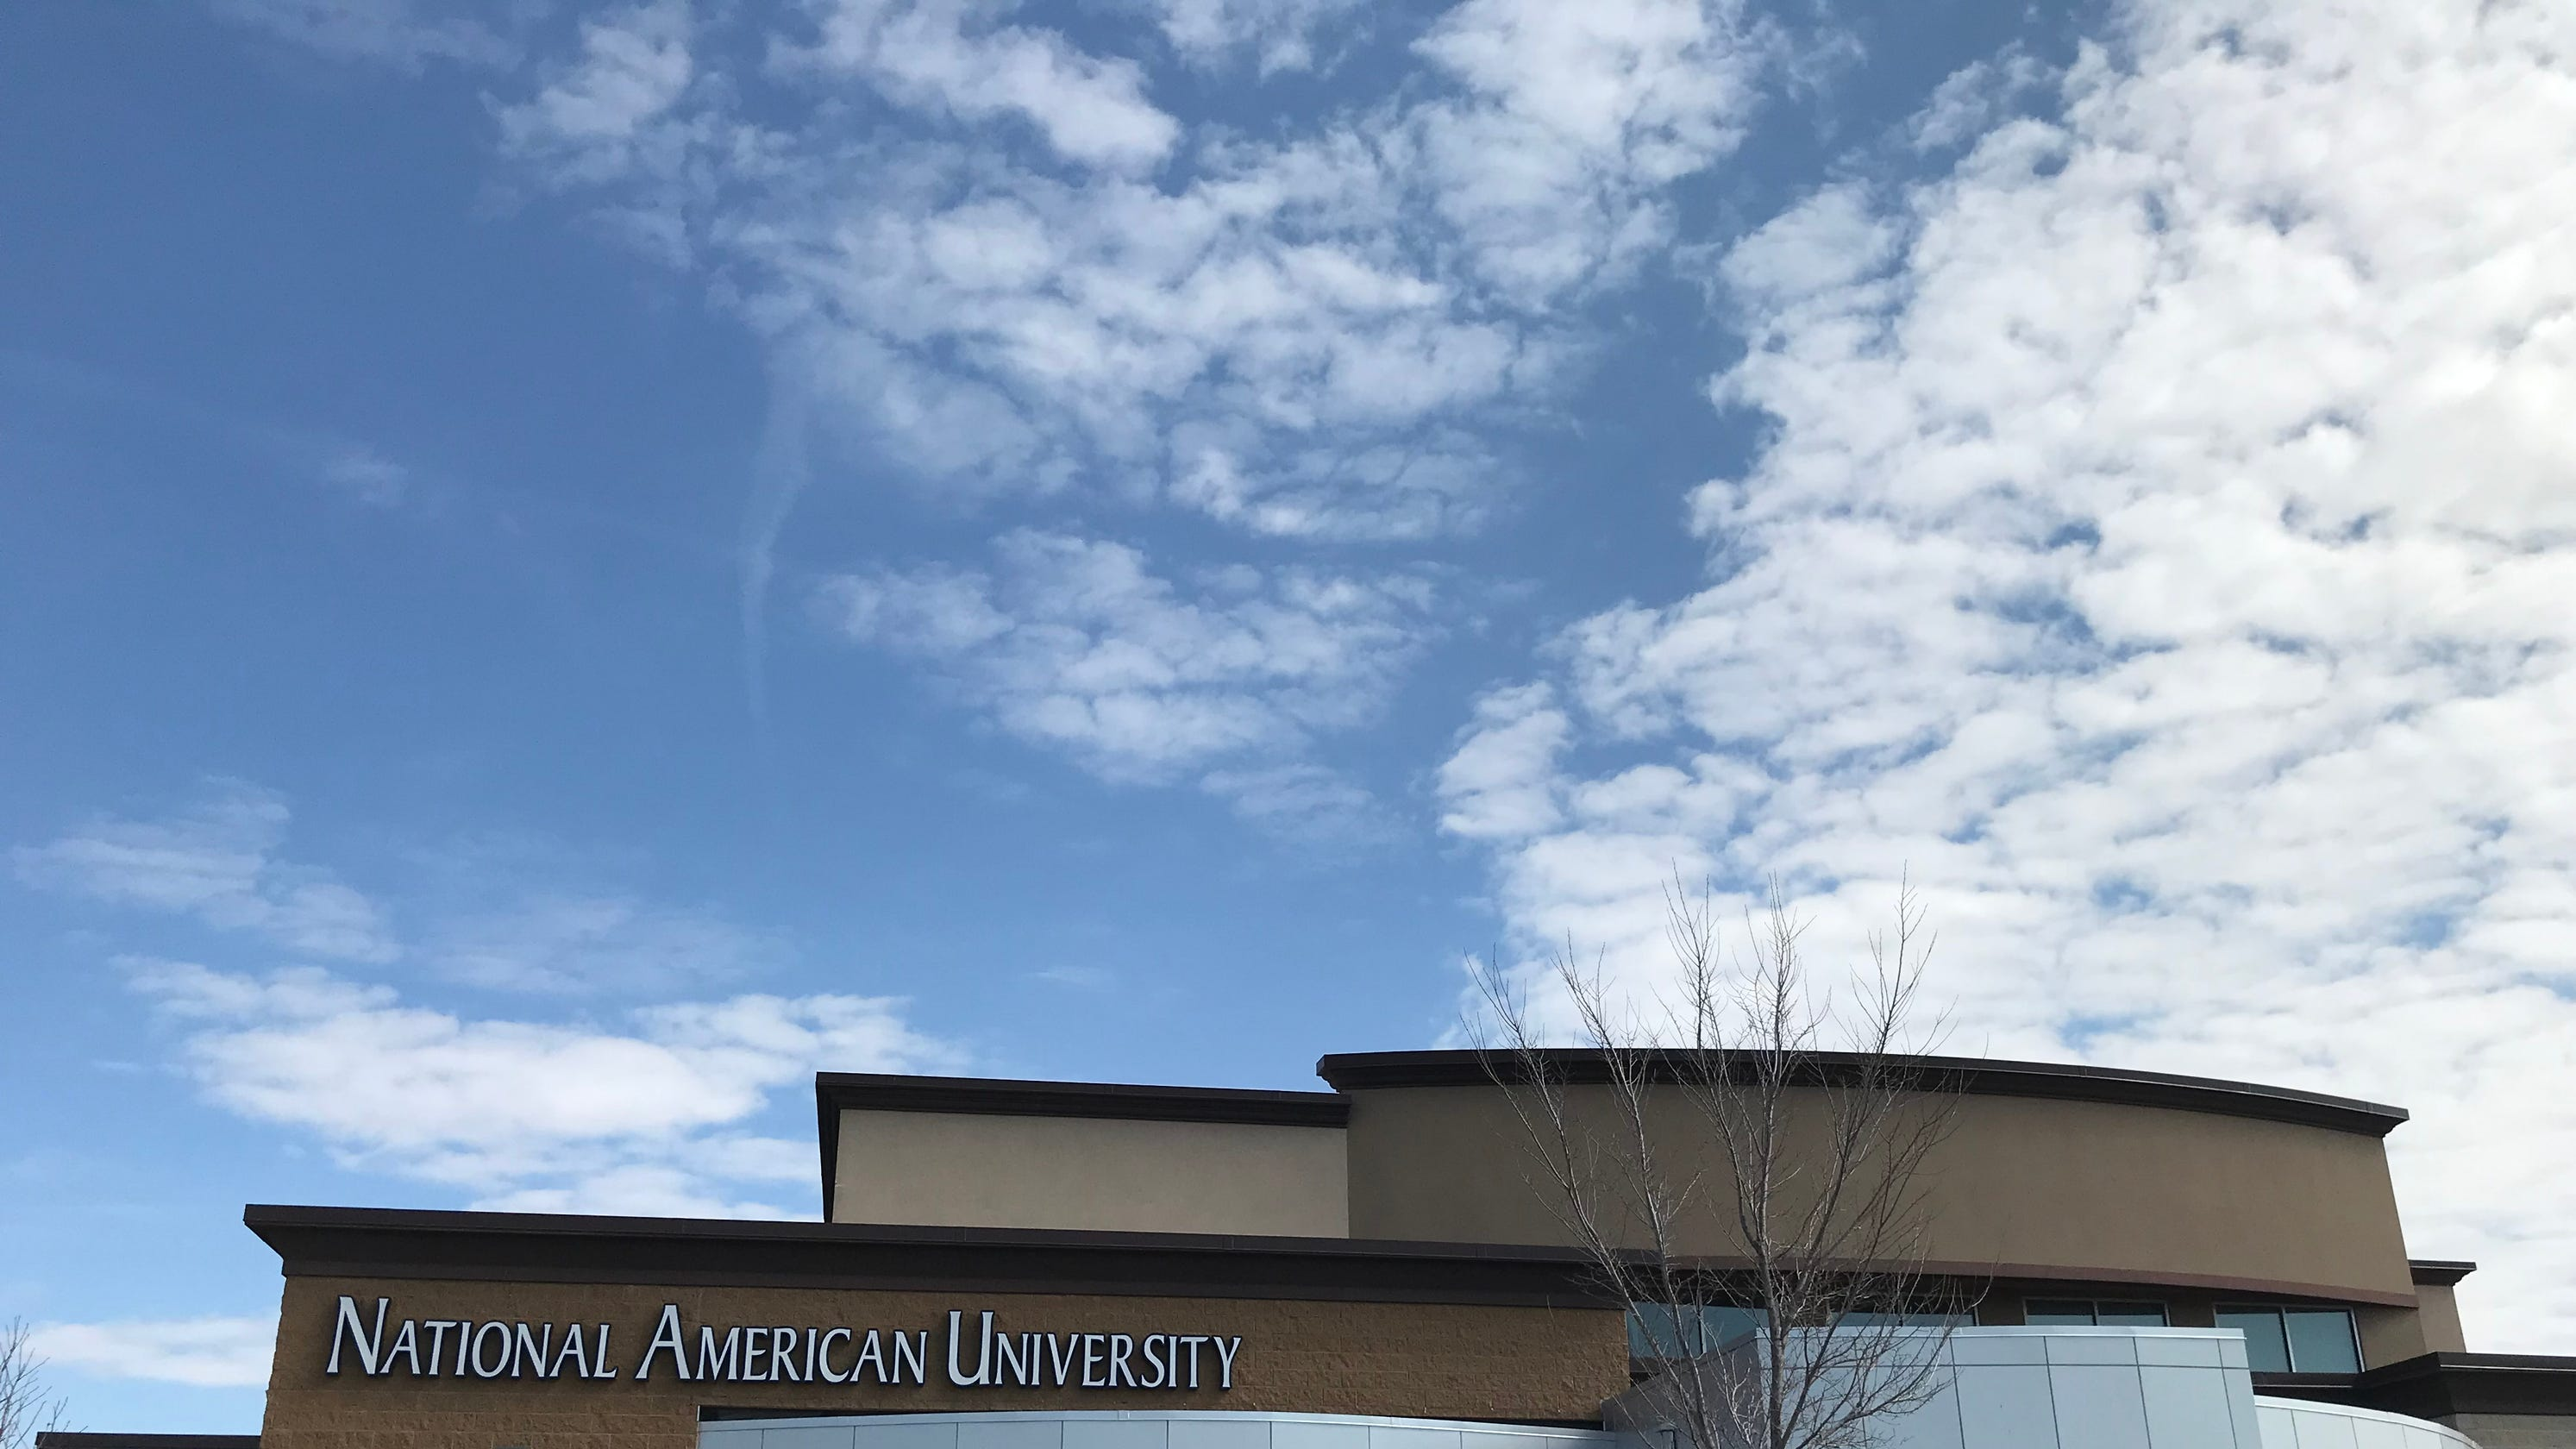 National American University Login >> National American University In Sioux Falls To Close As Classes